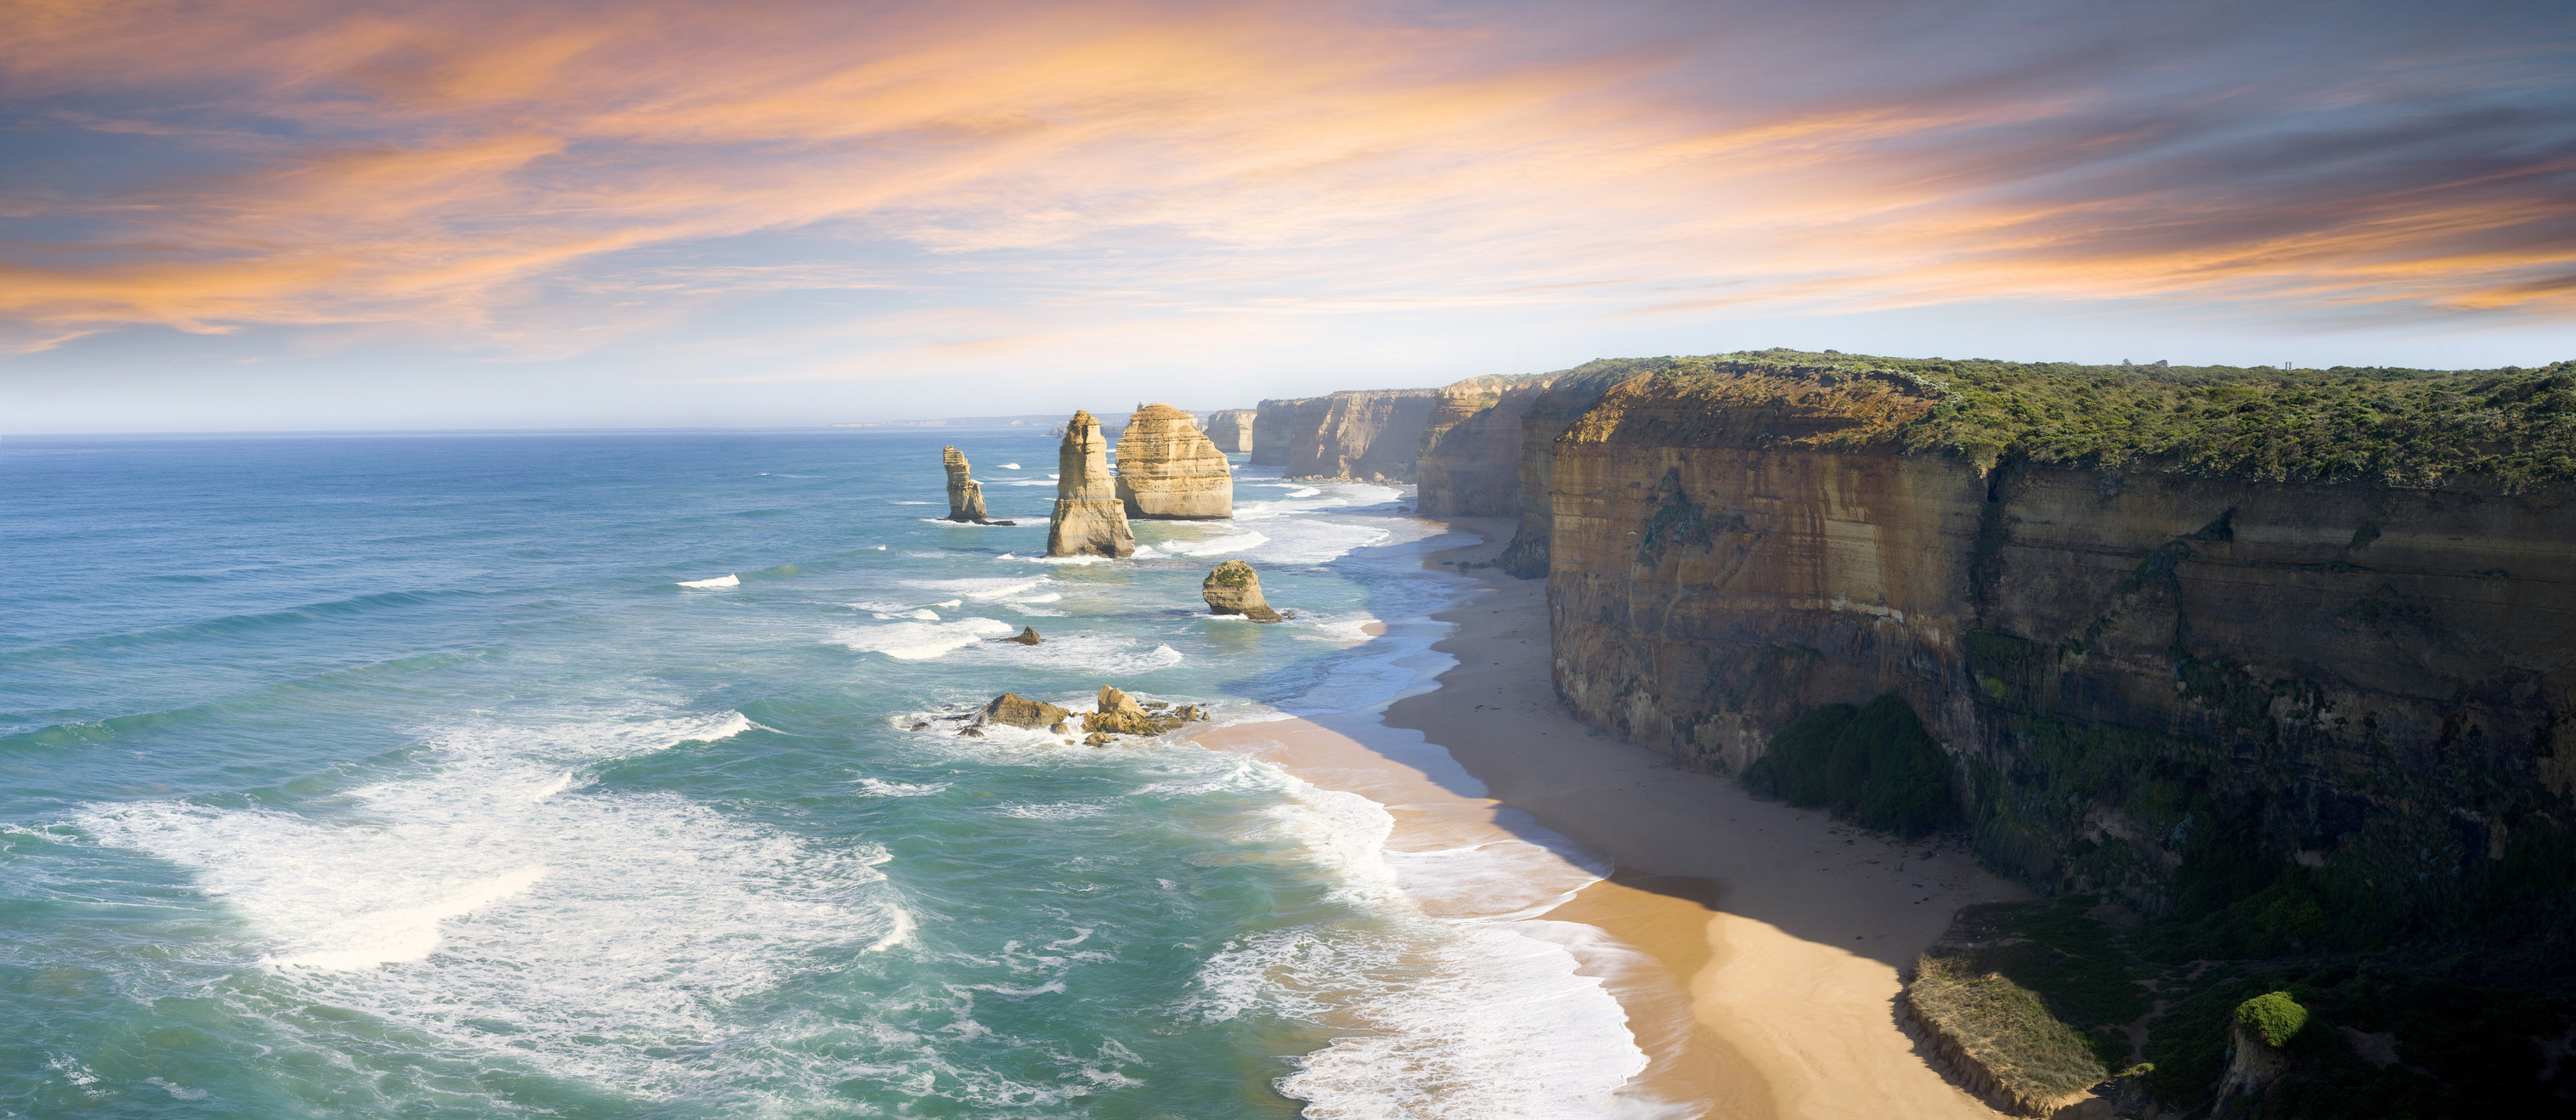 Great Ocean Road 12 Apostels Victoria Australien Header